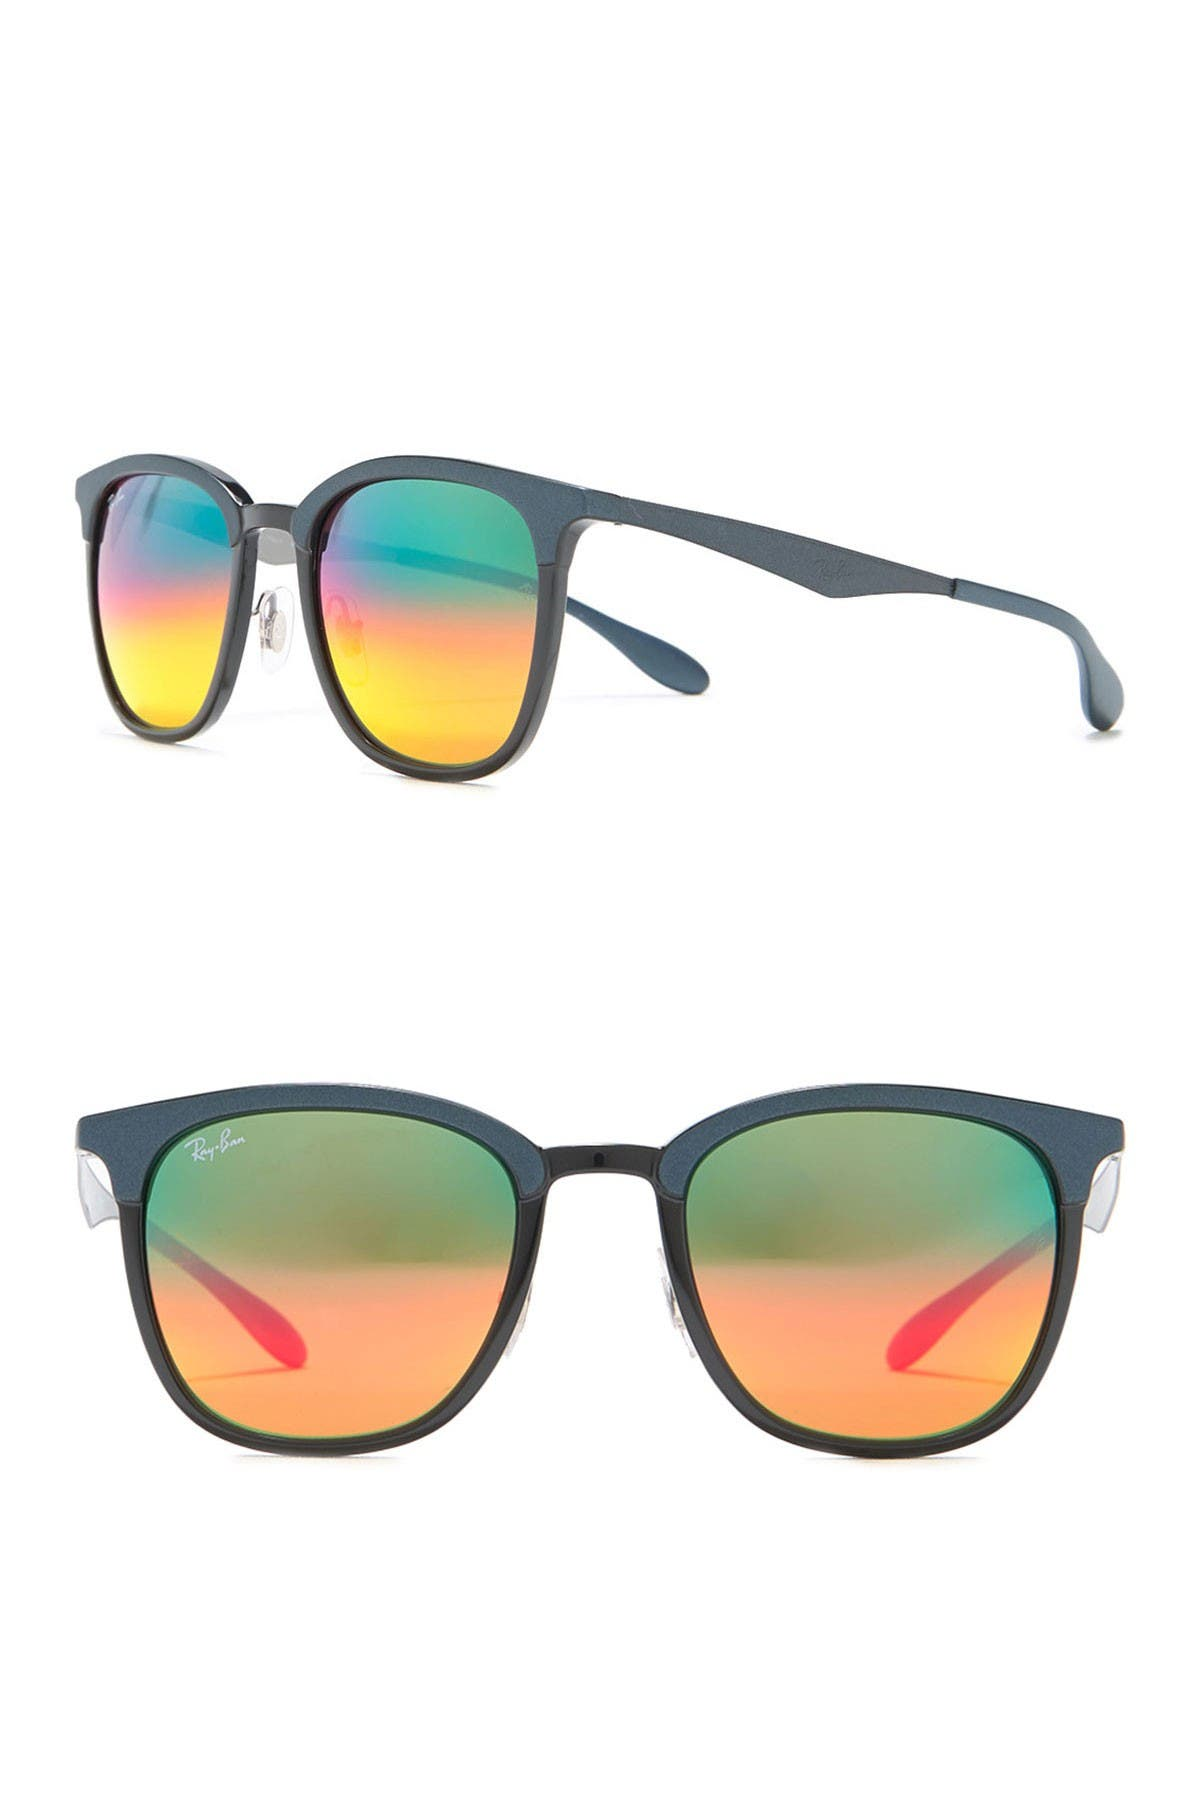 Image of Ray-Ban 51mm Injected Square Sunglasses